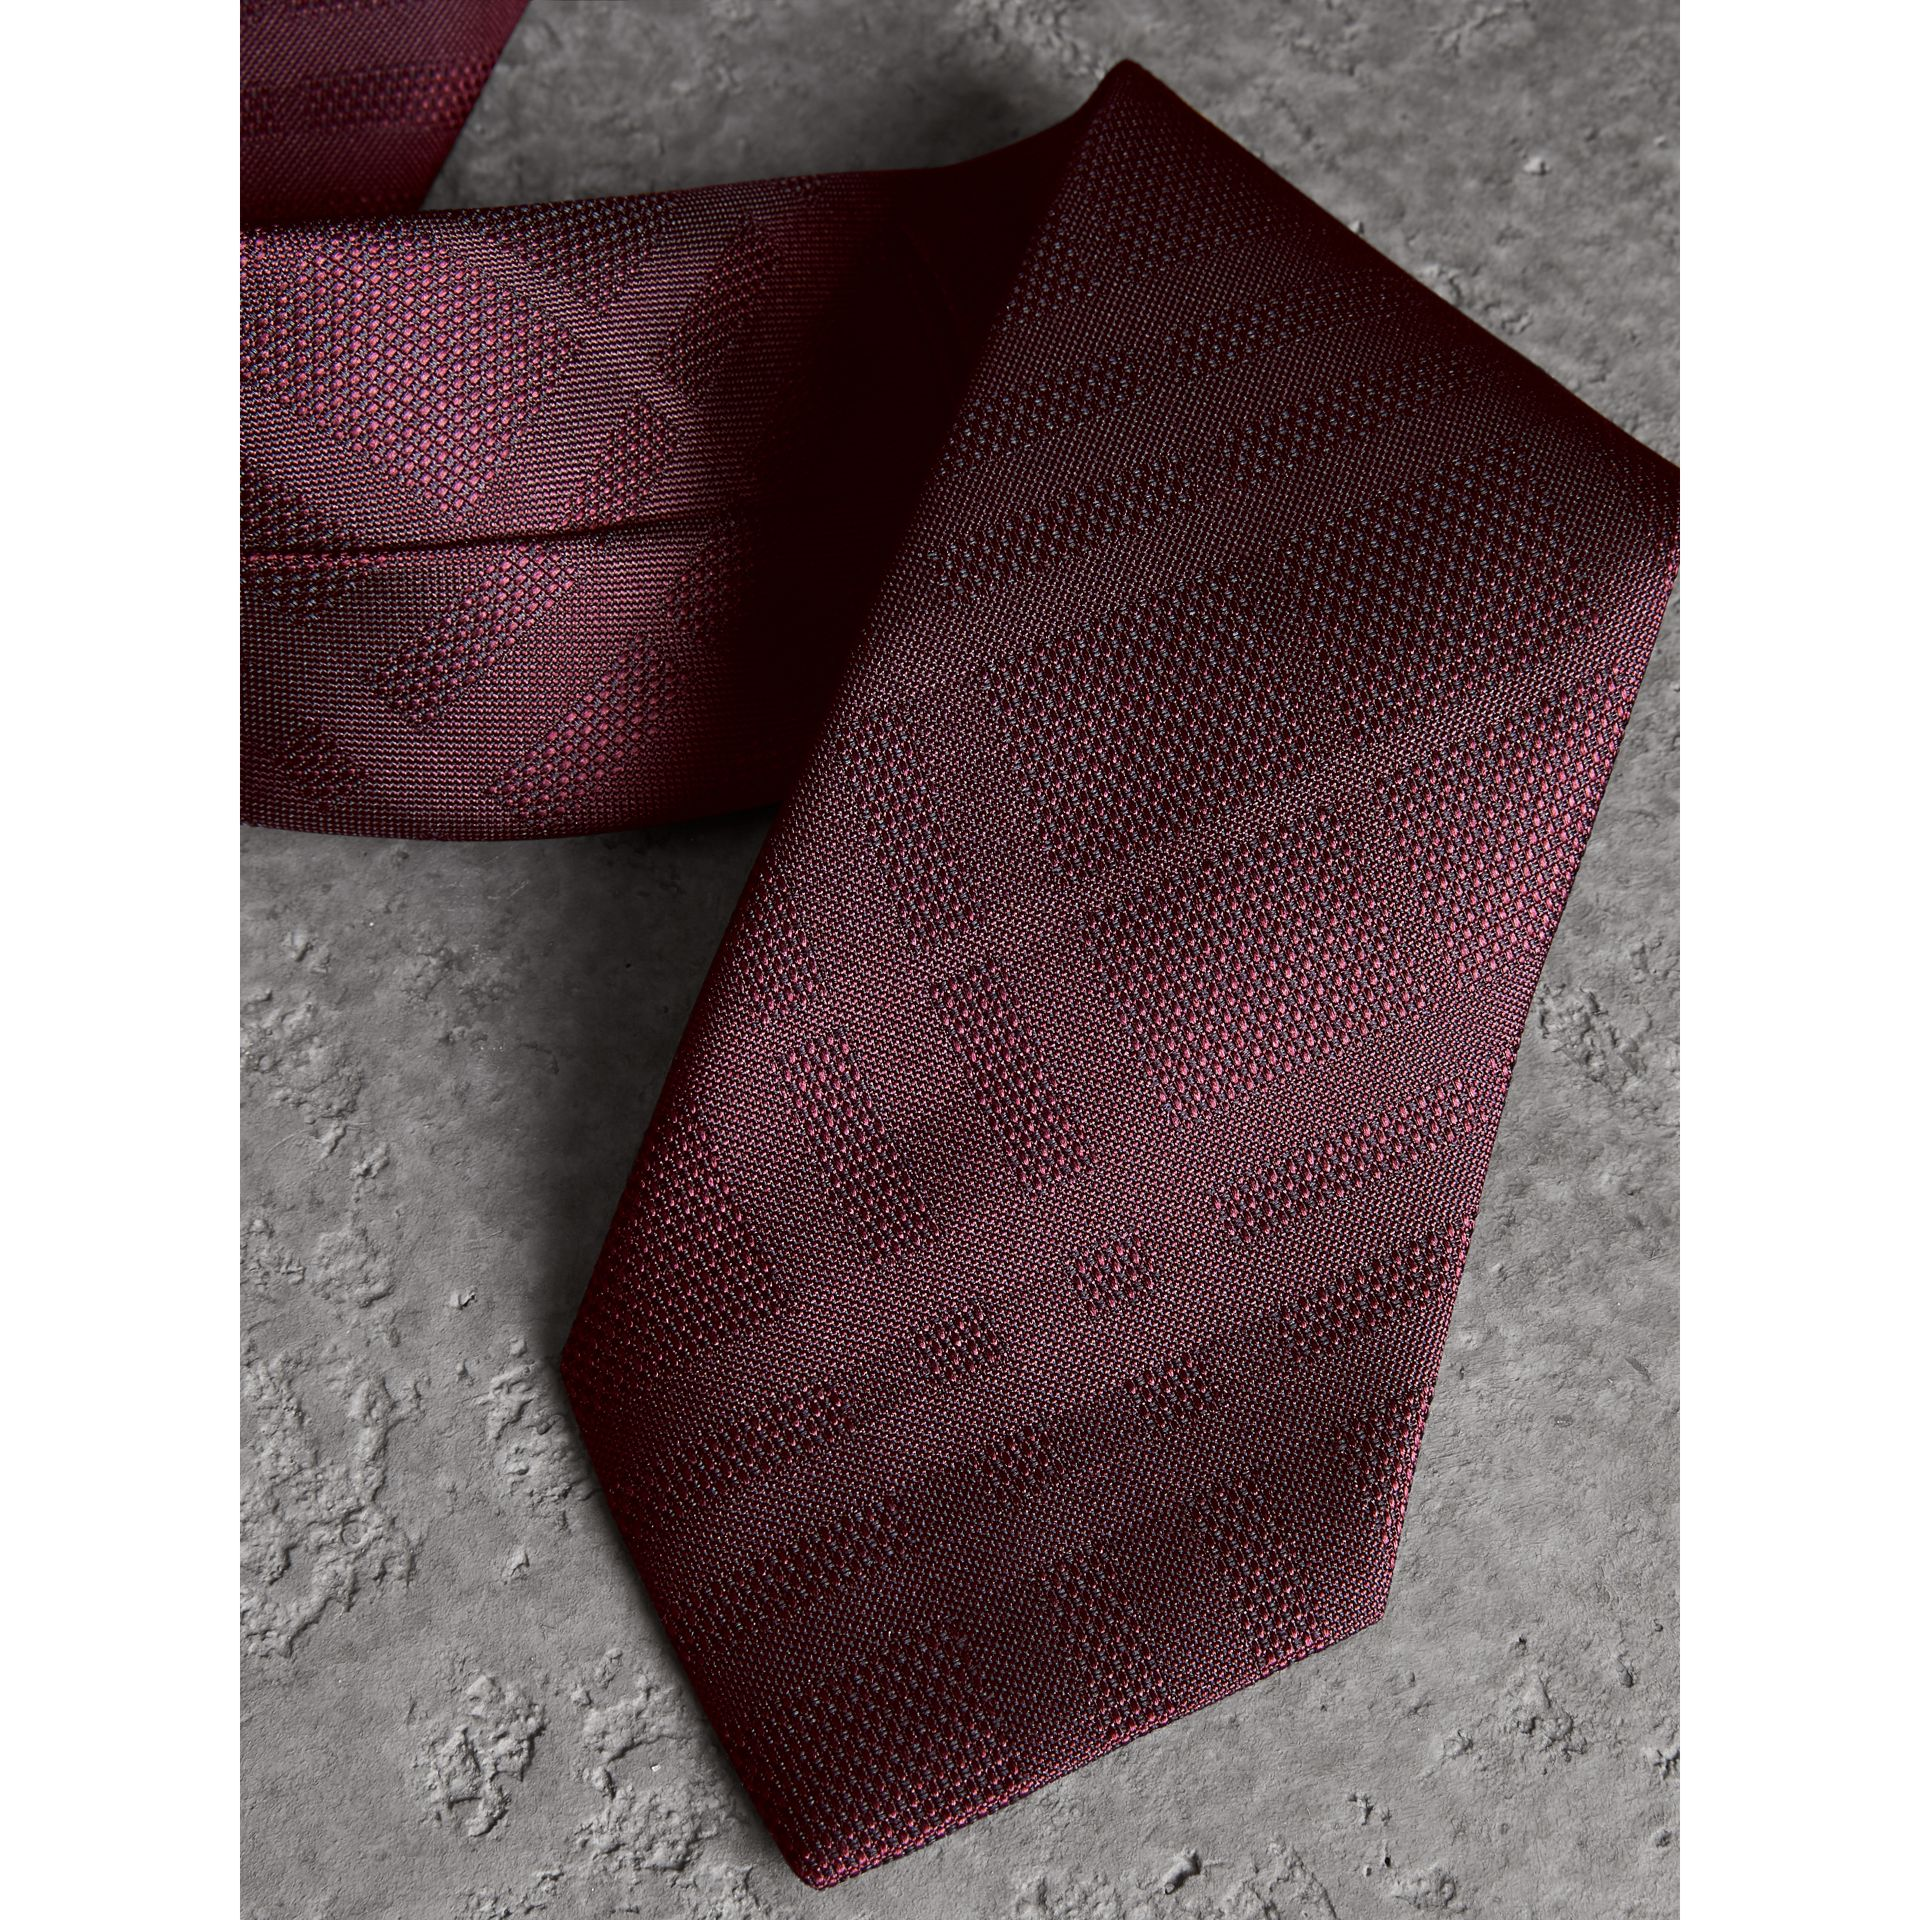 Classic Cut Check Silk Jacquard Tie in Deep Claret - Men | Burberry United States - gallery image 1